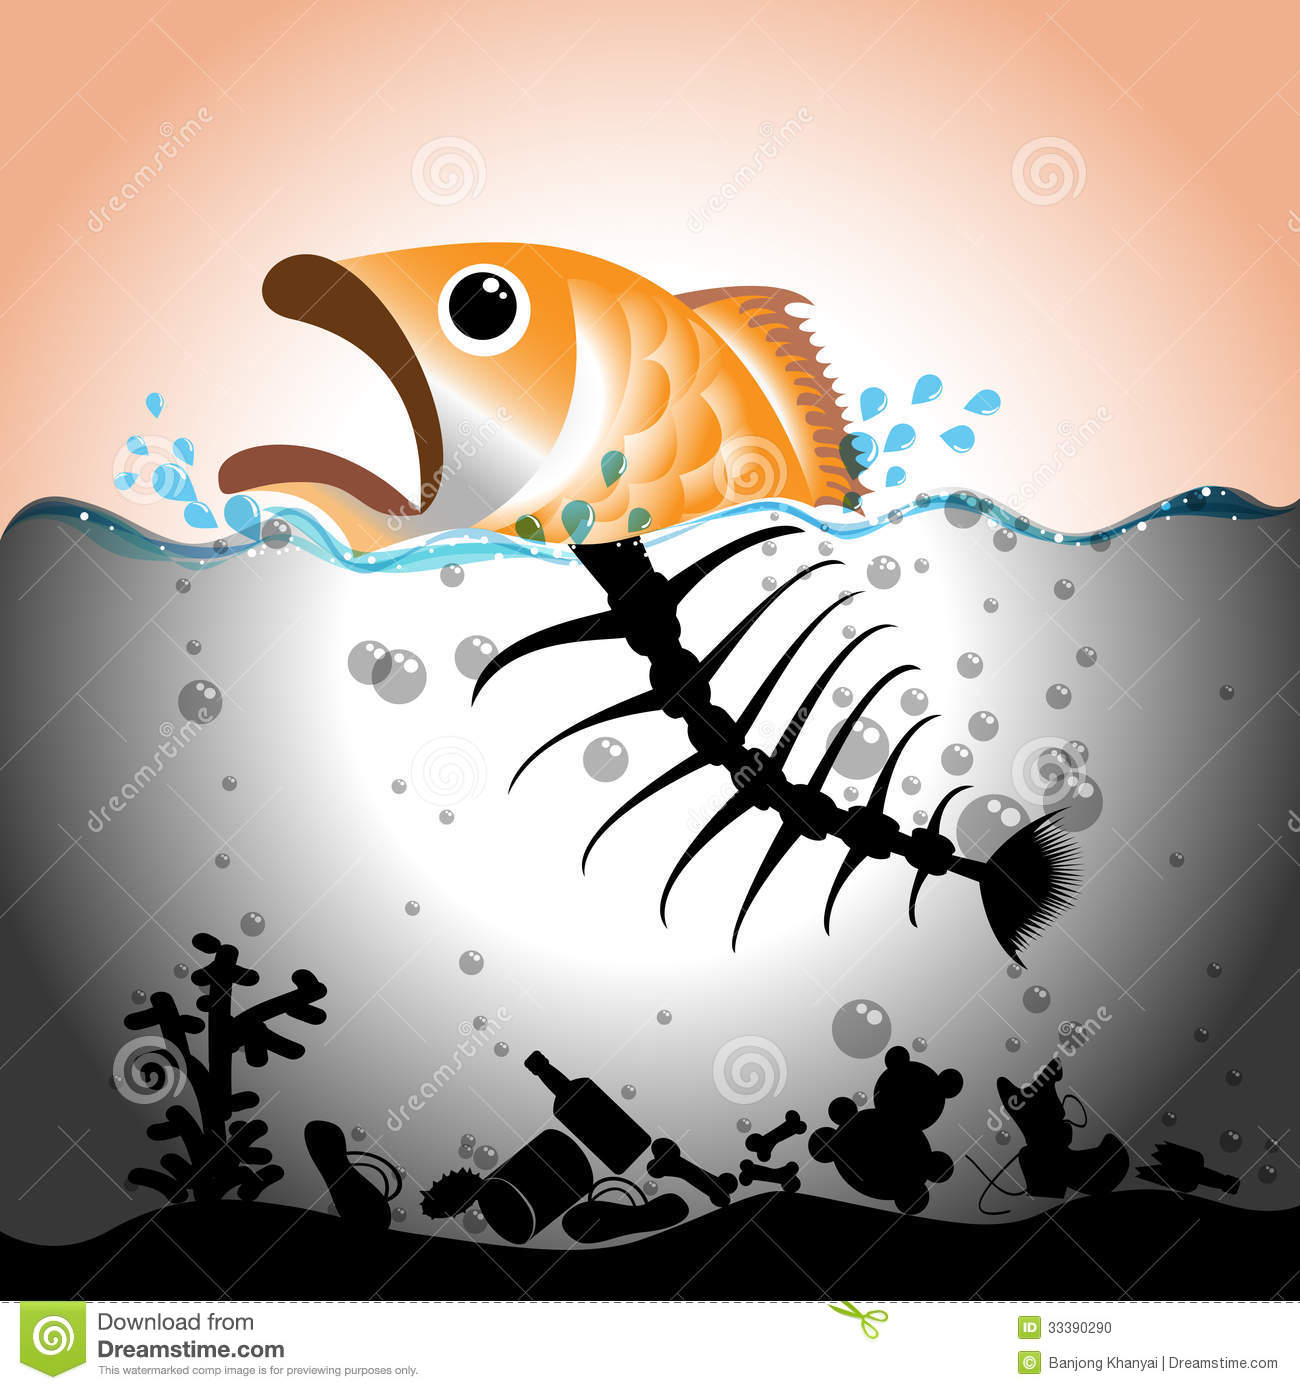 Water pollution clipart pictures clipart royalty free download Water Pollution Concept | Clipart Panda - Free Clipart Images clipart royalty free download